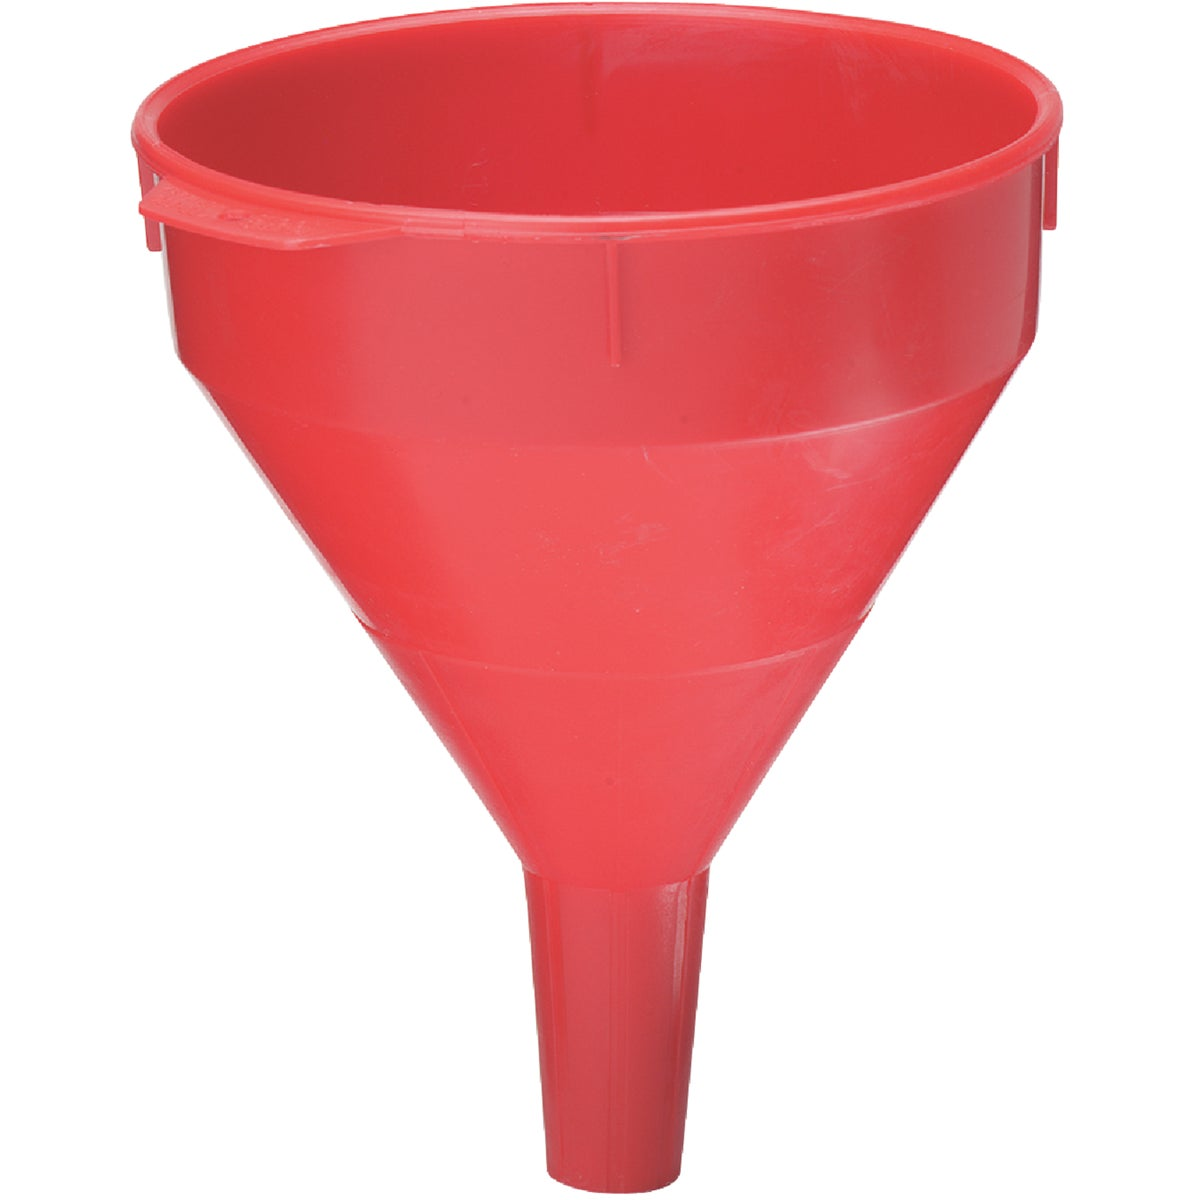 1 PINT PLASTIC FUNNEL - 75-069 by Plews  Lubrimatic